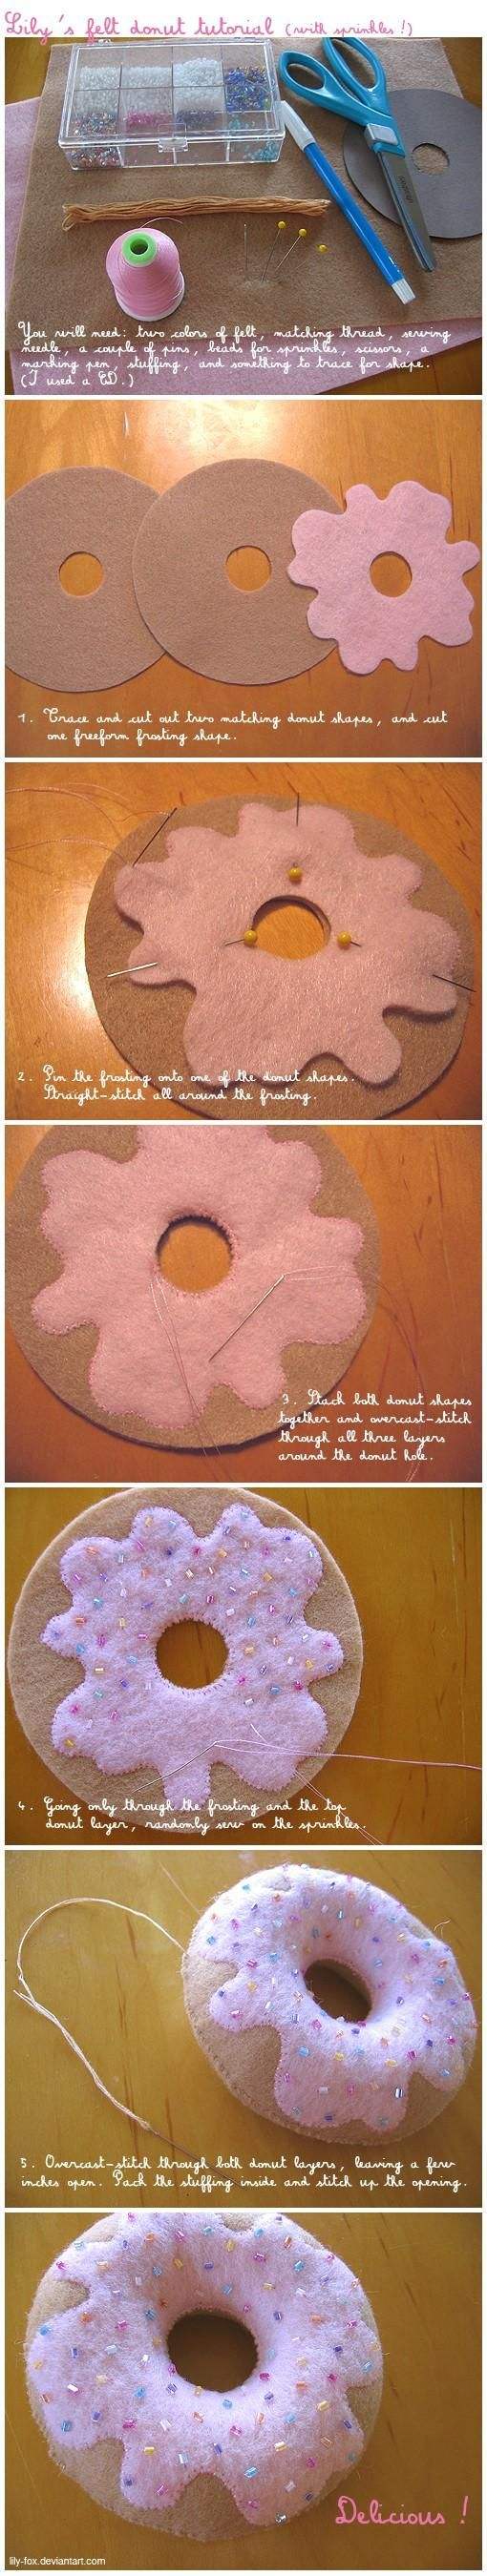 Sewing project!